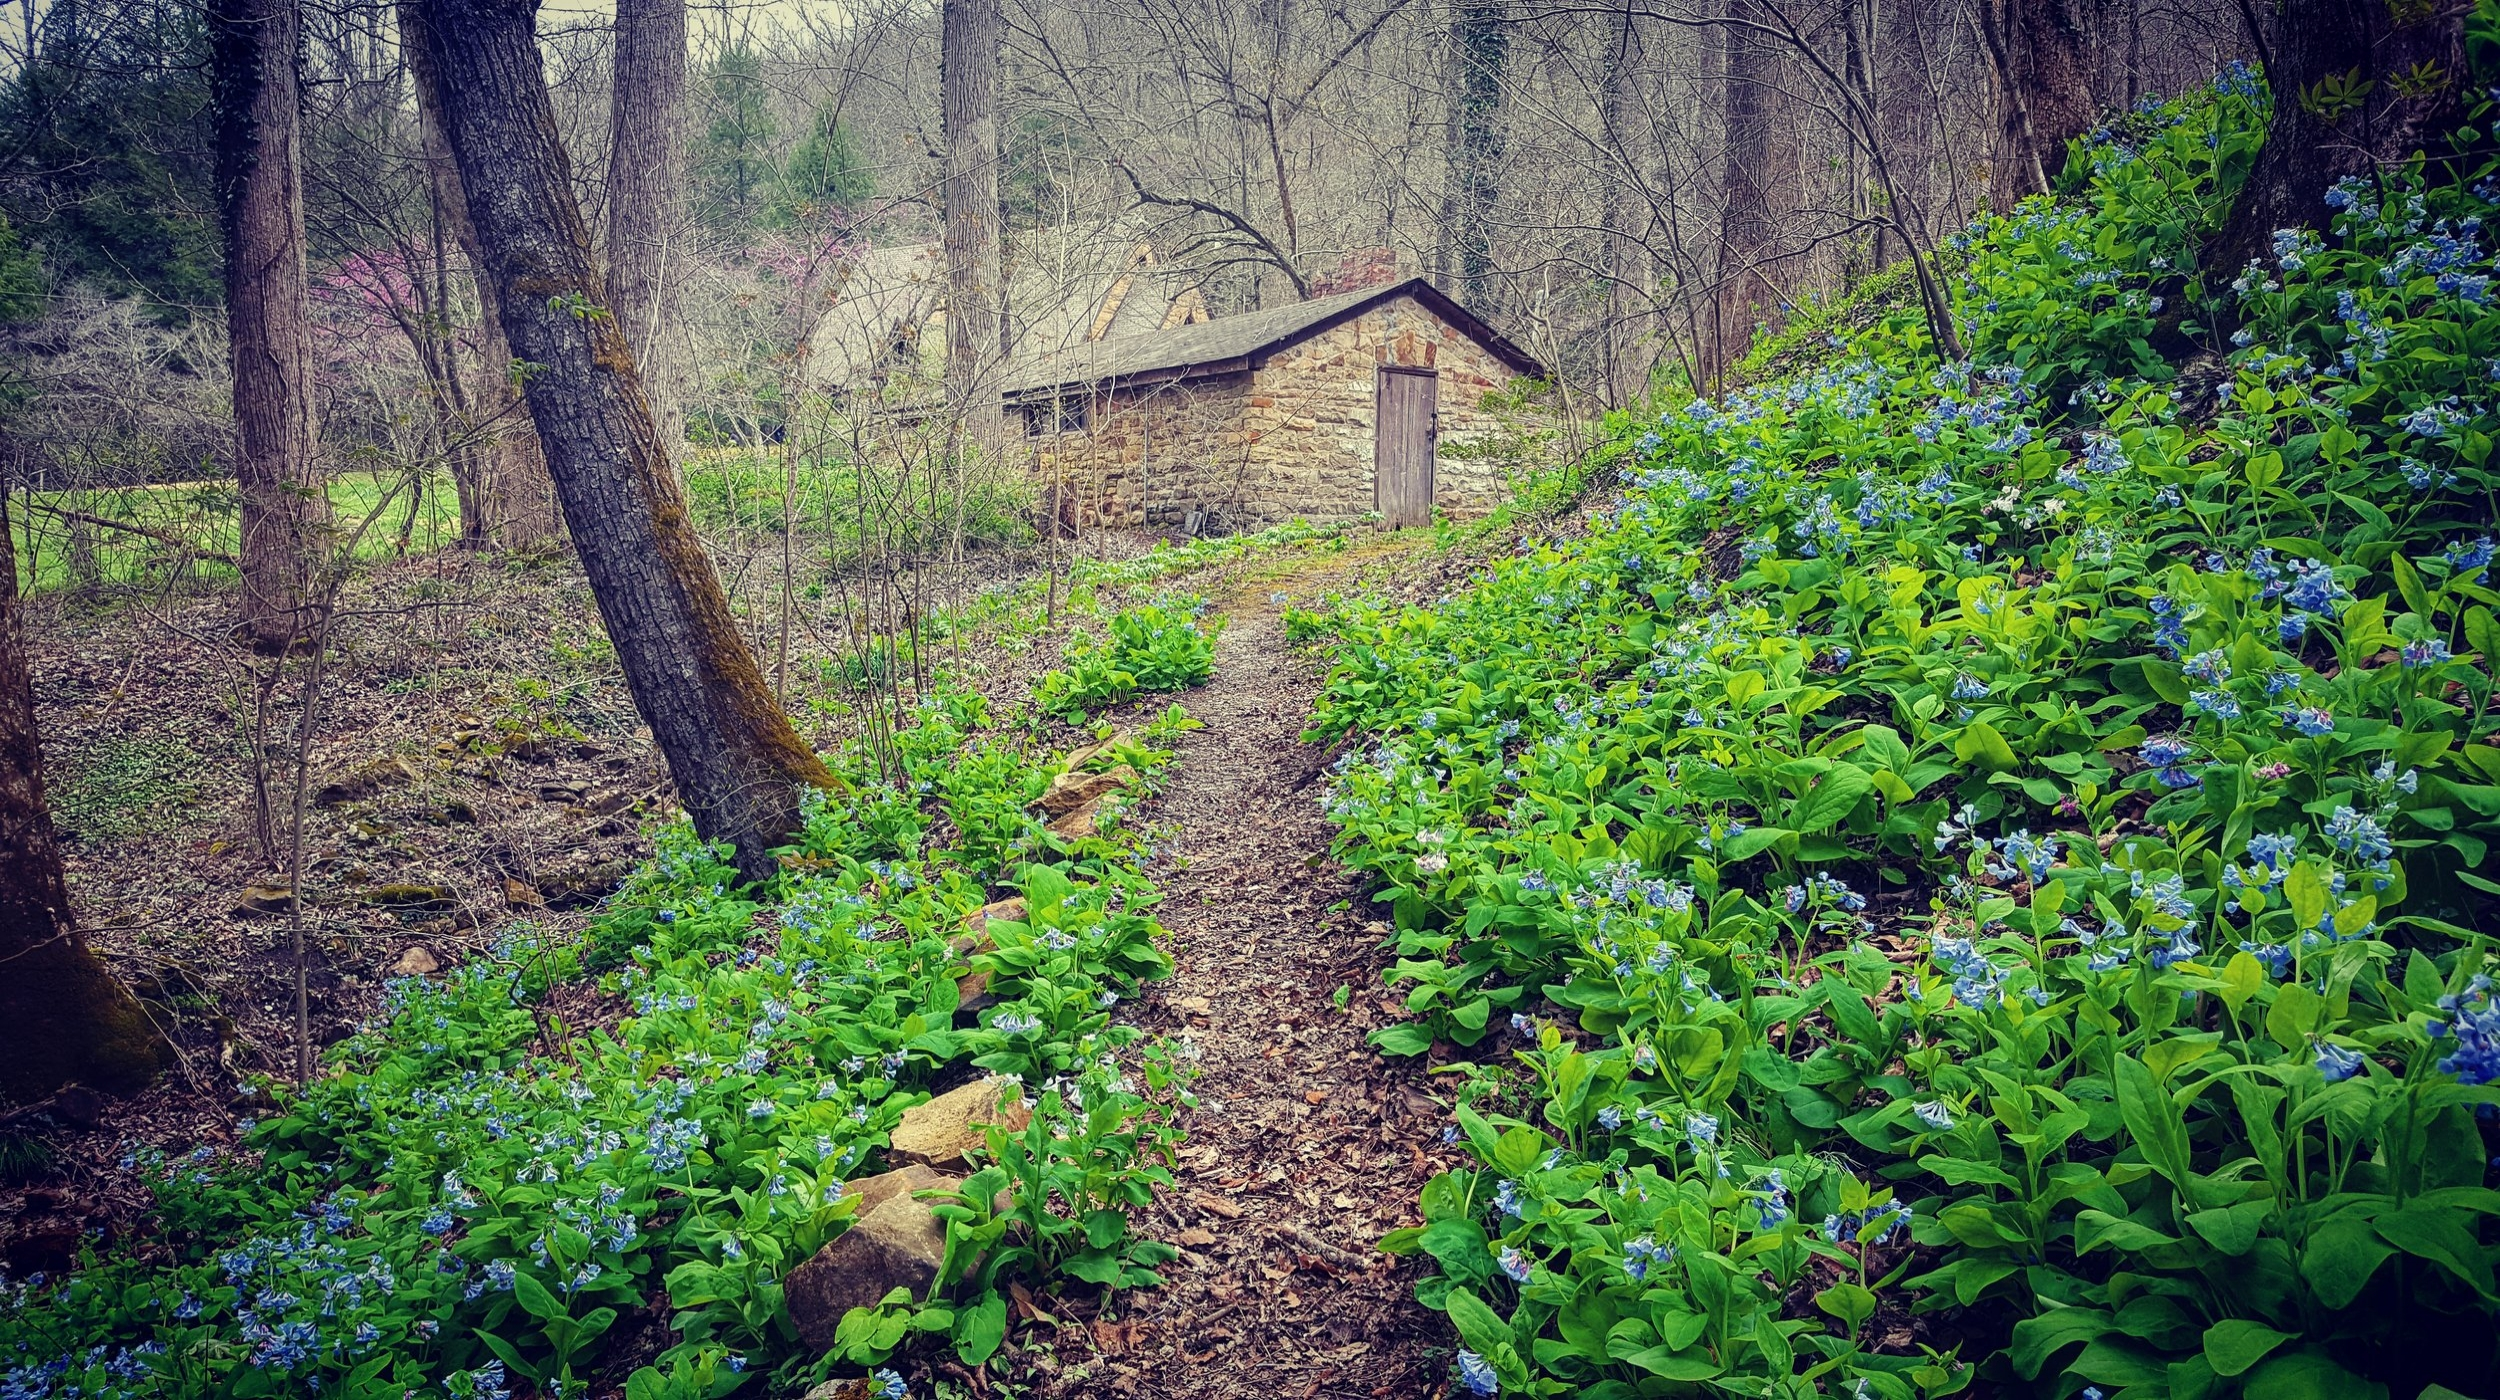 Find your path to Pine Mountain Settlement School